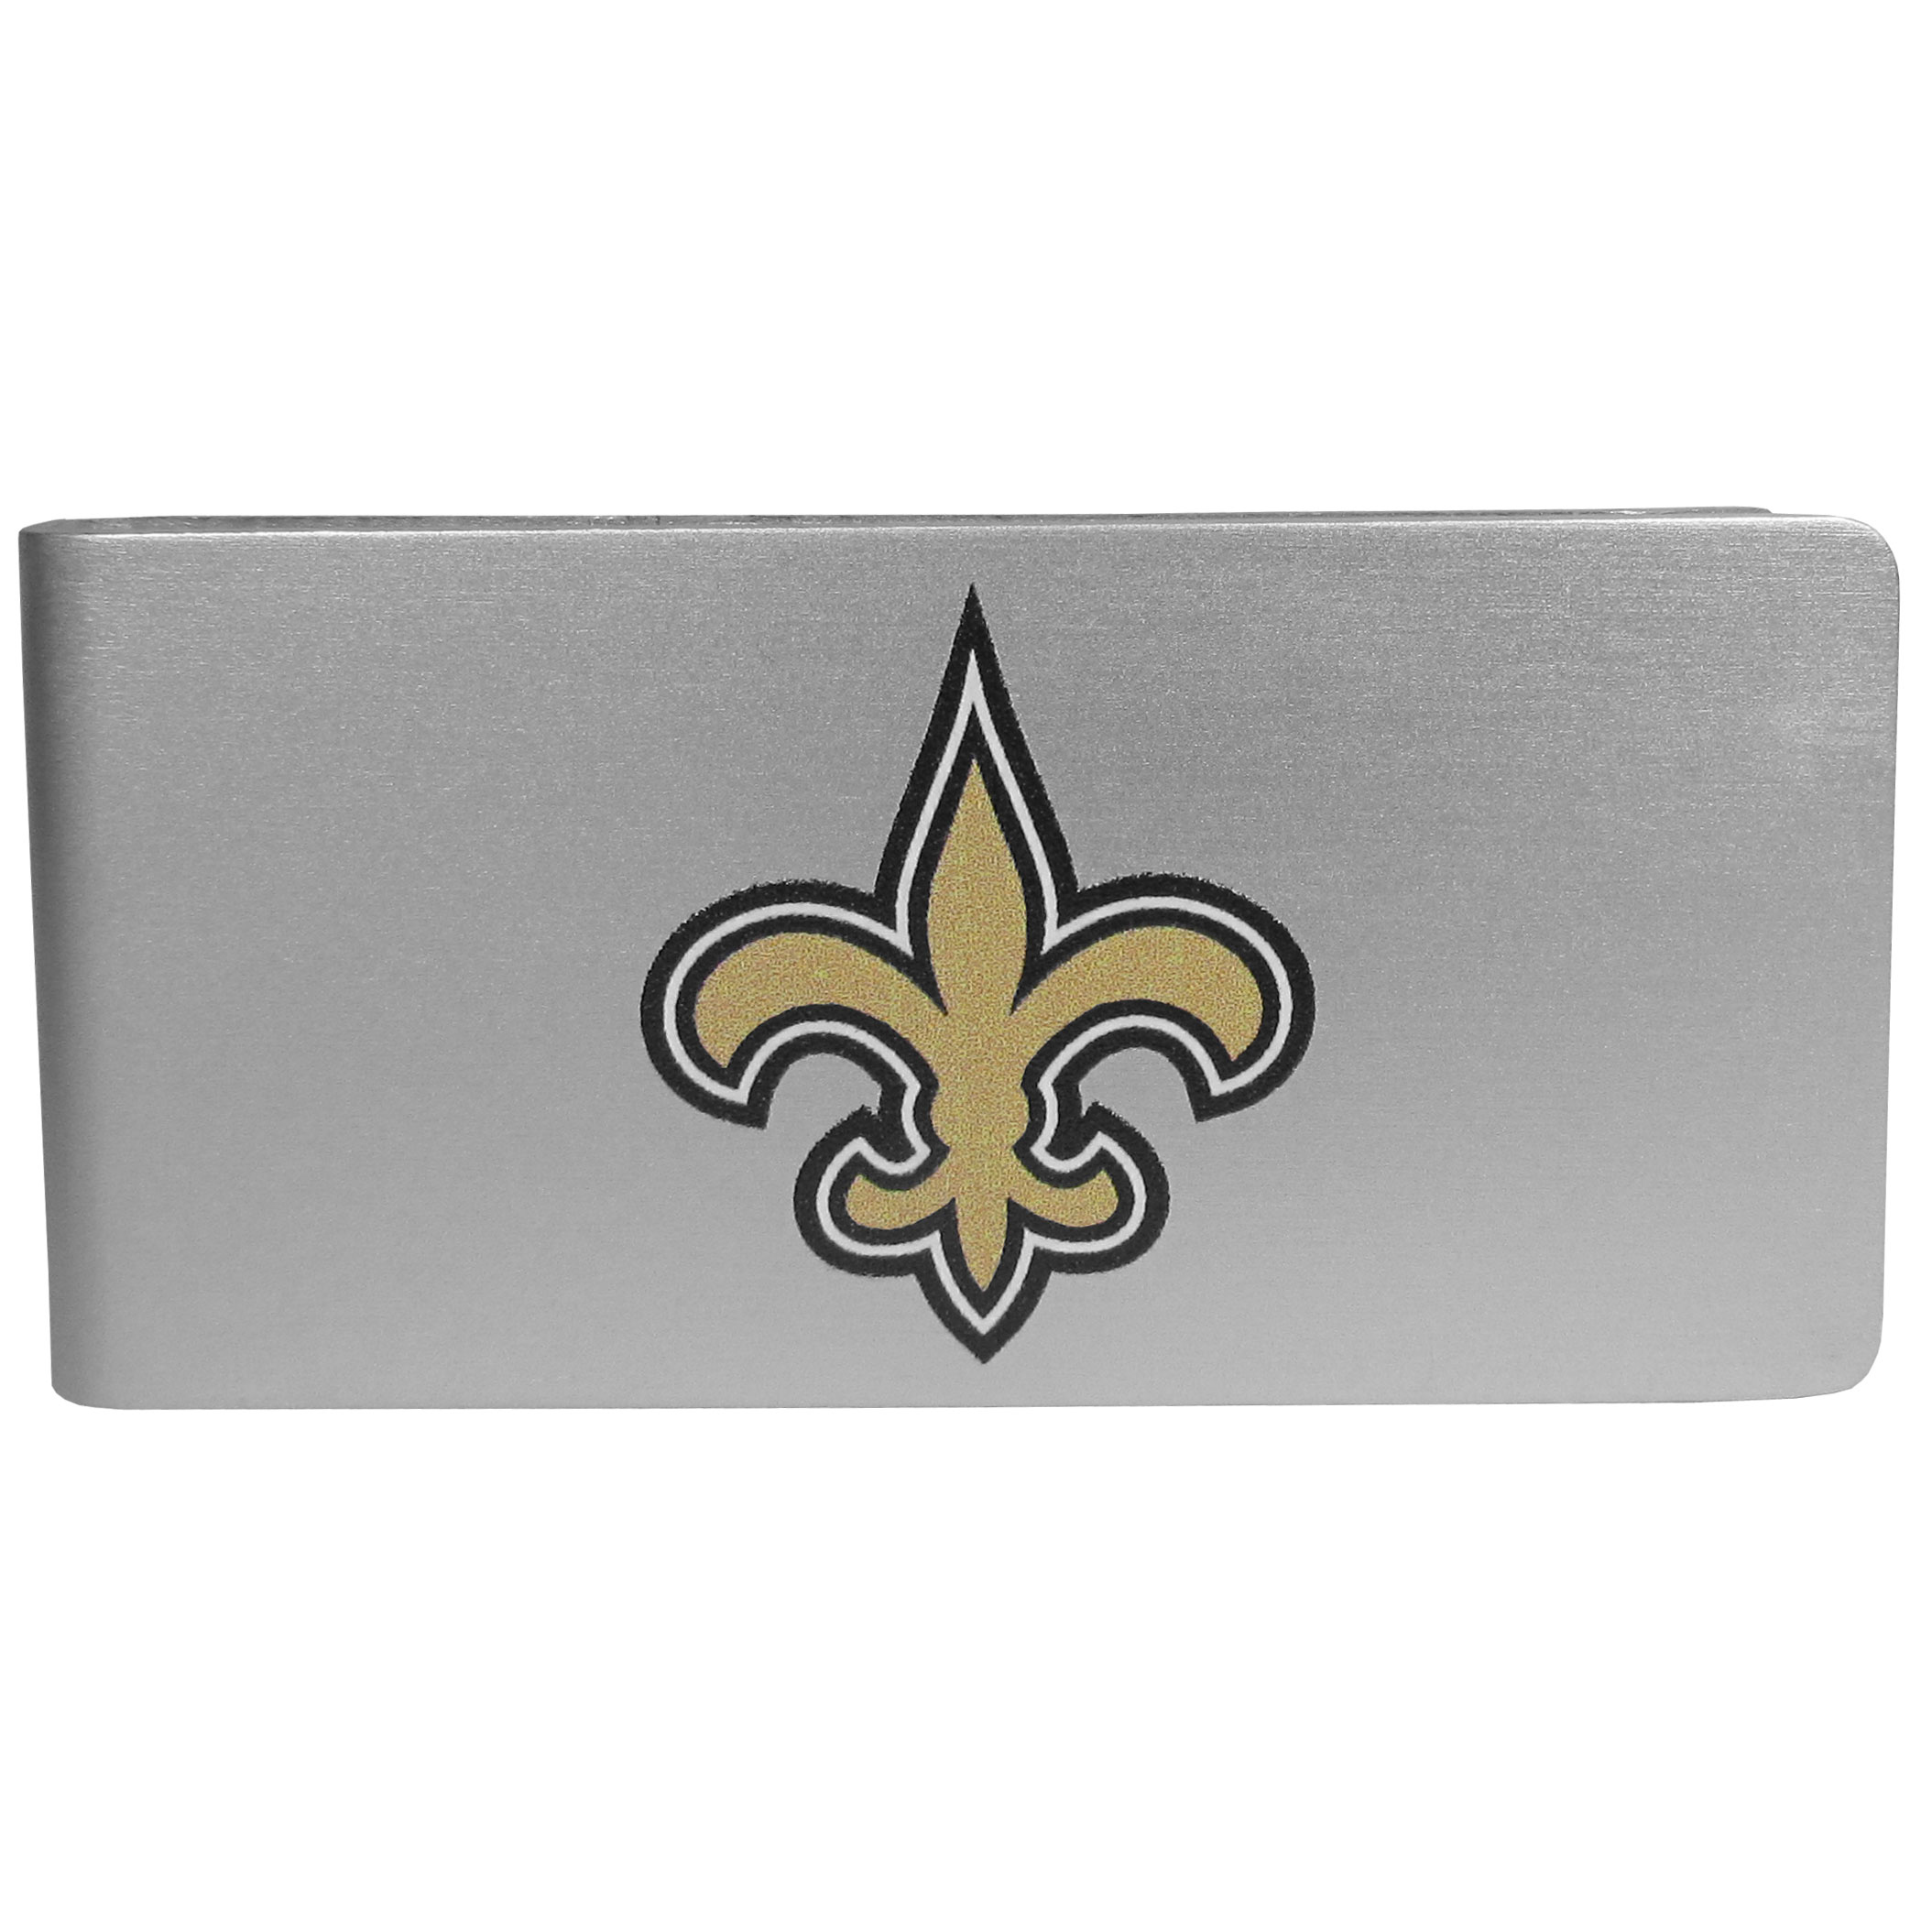 New Orleans Saints Logo Money Clip - Our brushed metal money clip has classic style and functionality. The attractive clip features the New Orleans Saints logo expertly printed on front.